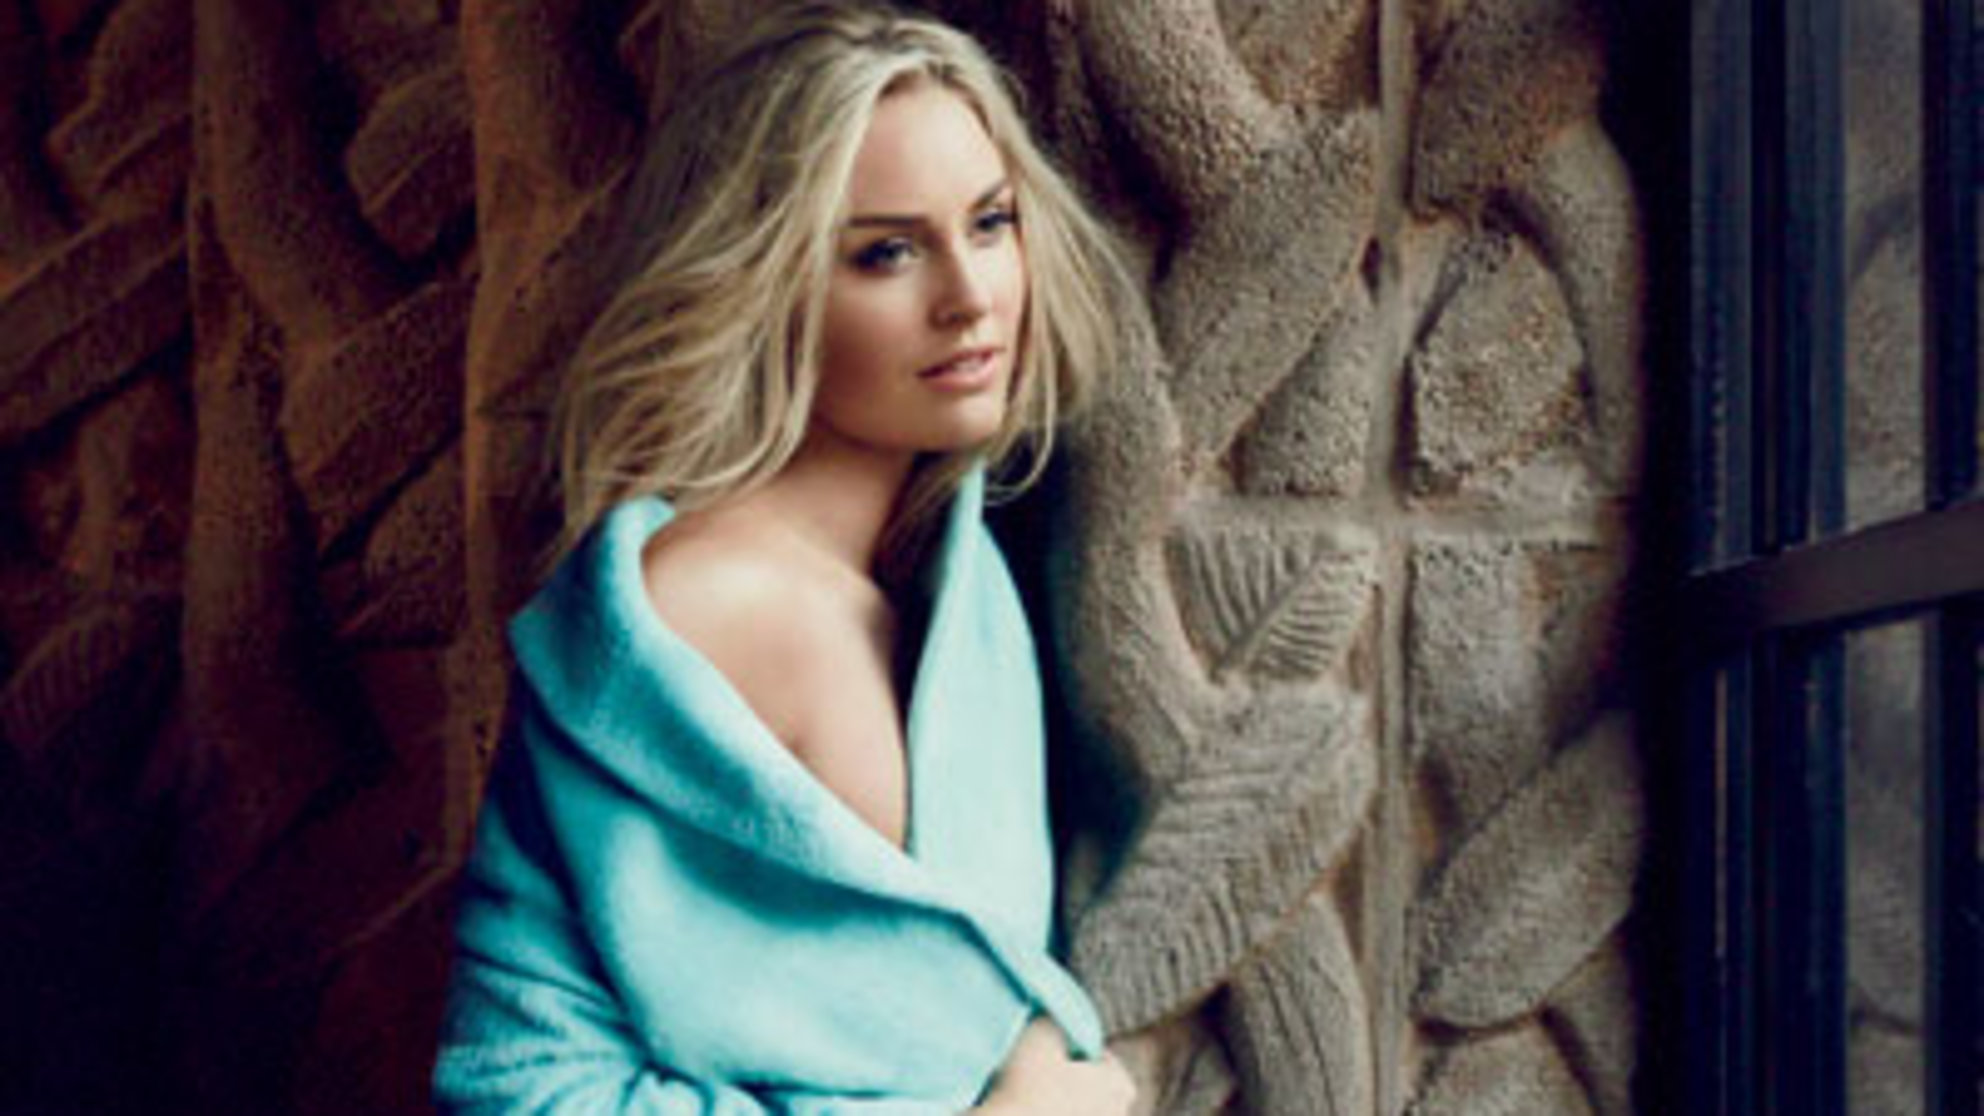 Lindsey Vonn:  You Don't Have to Be a Size 2 to Be Beautiful